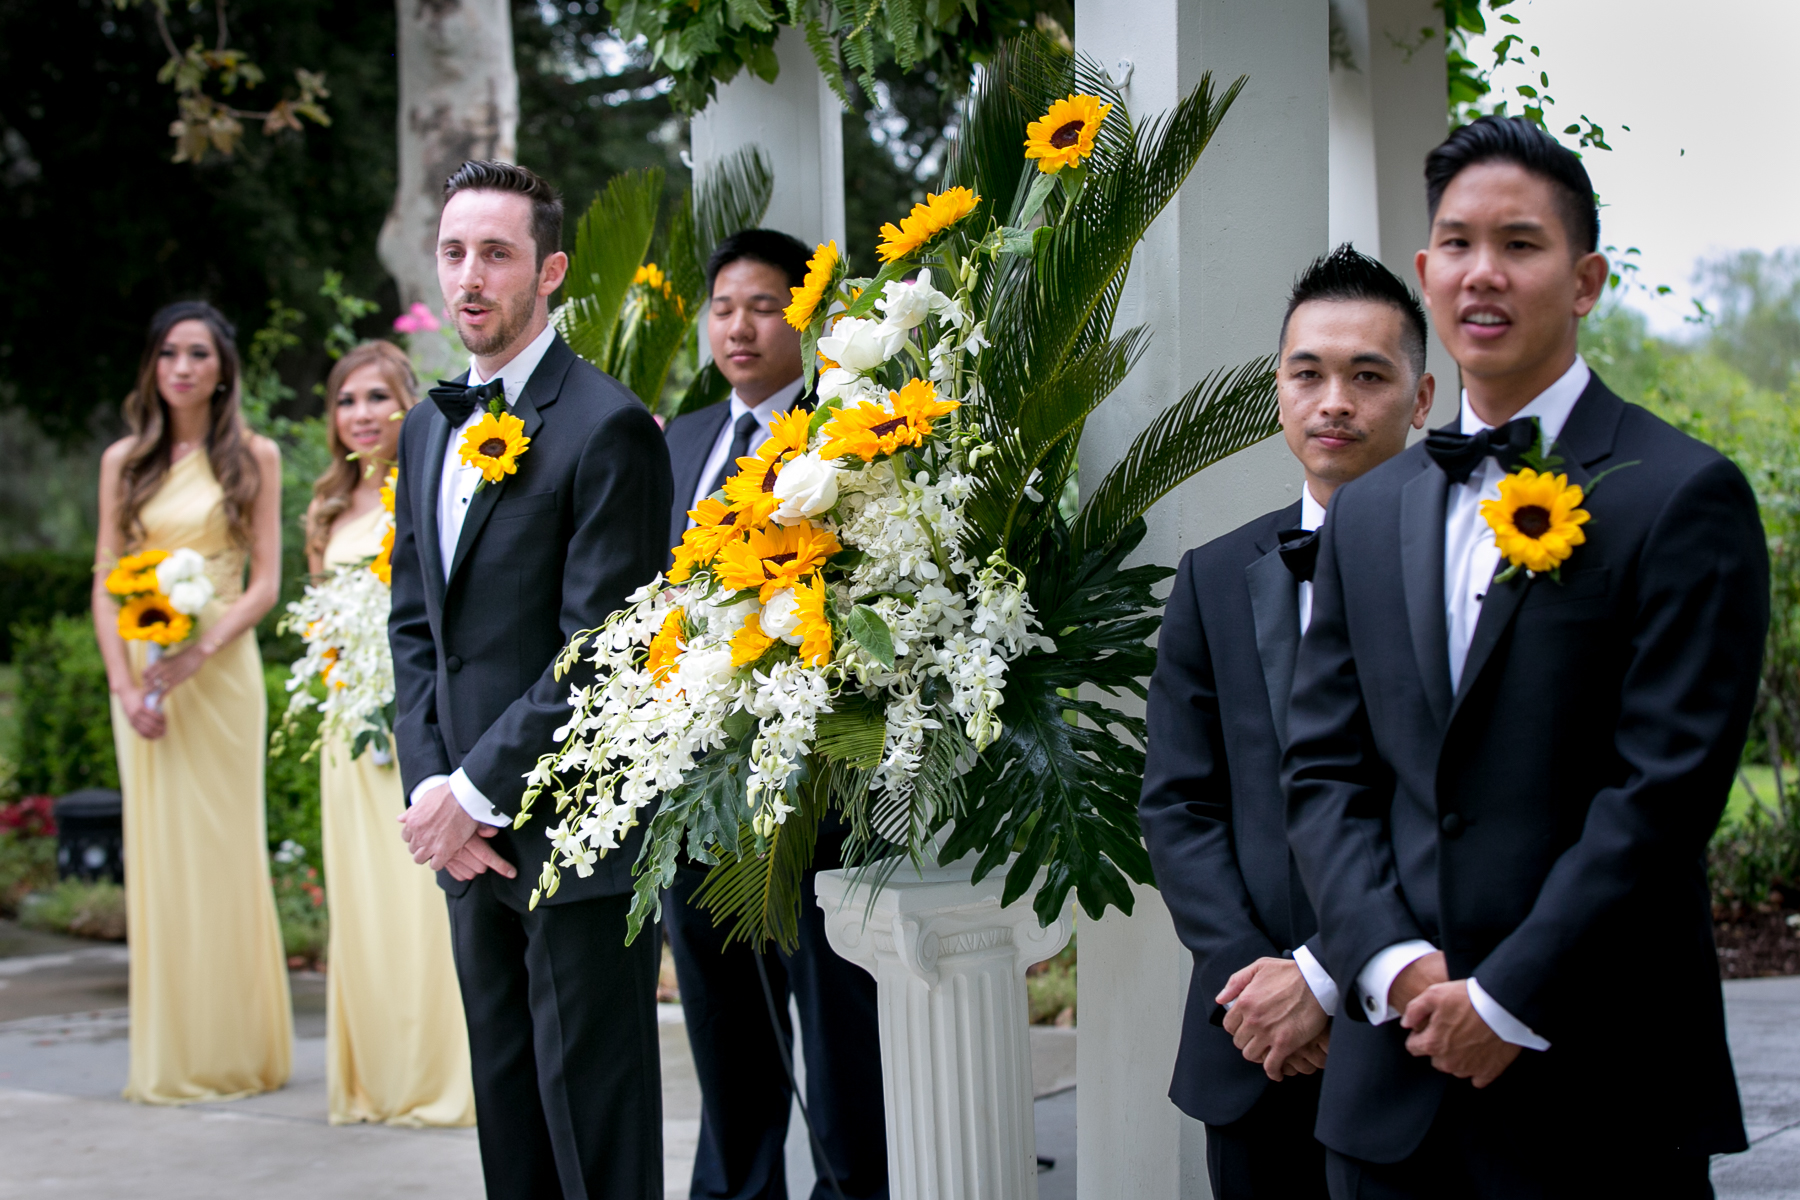 groom waits fro bride to walk down the aisle at wedding in fullerton photos